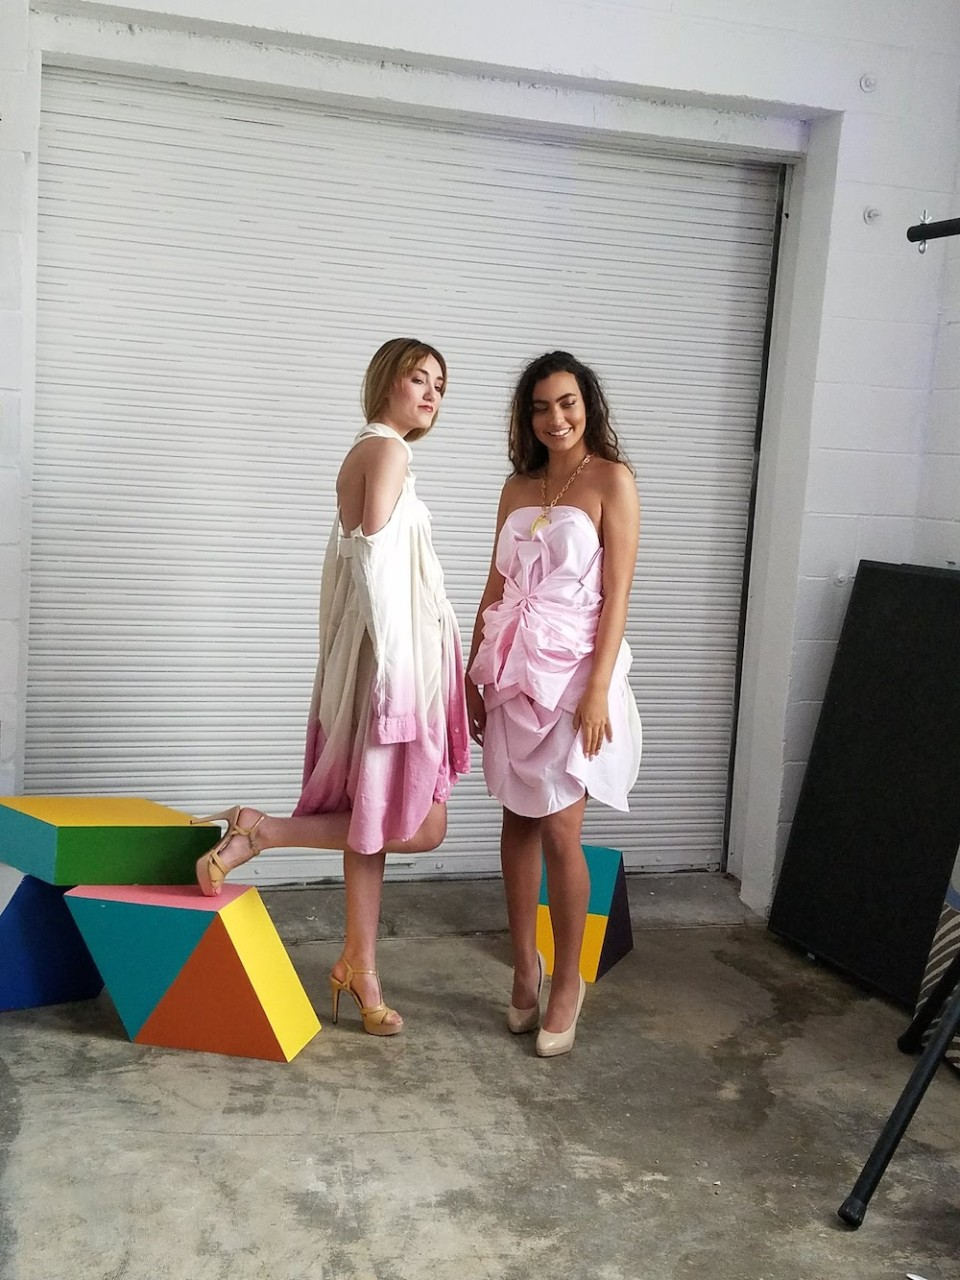 Two models wear pink dresses made from white button-up shirts